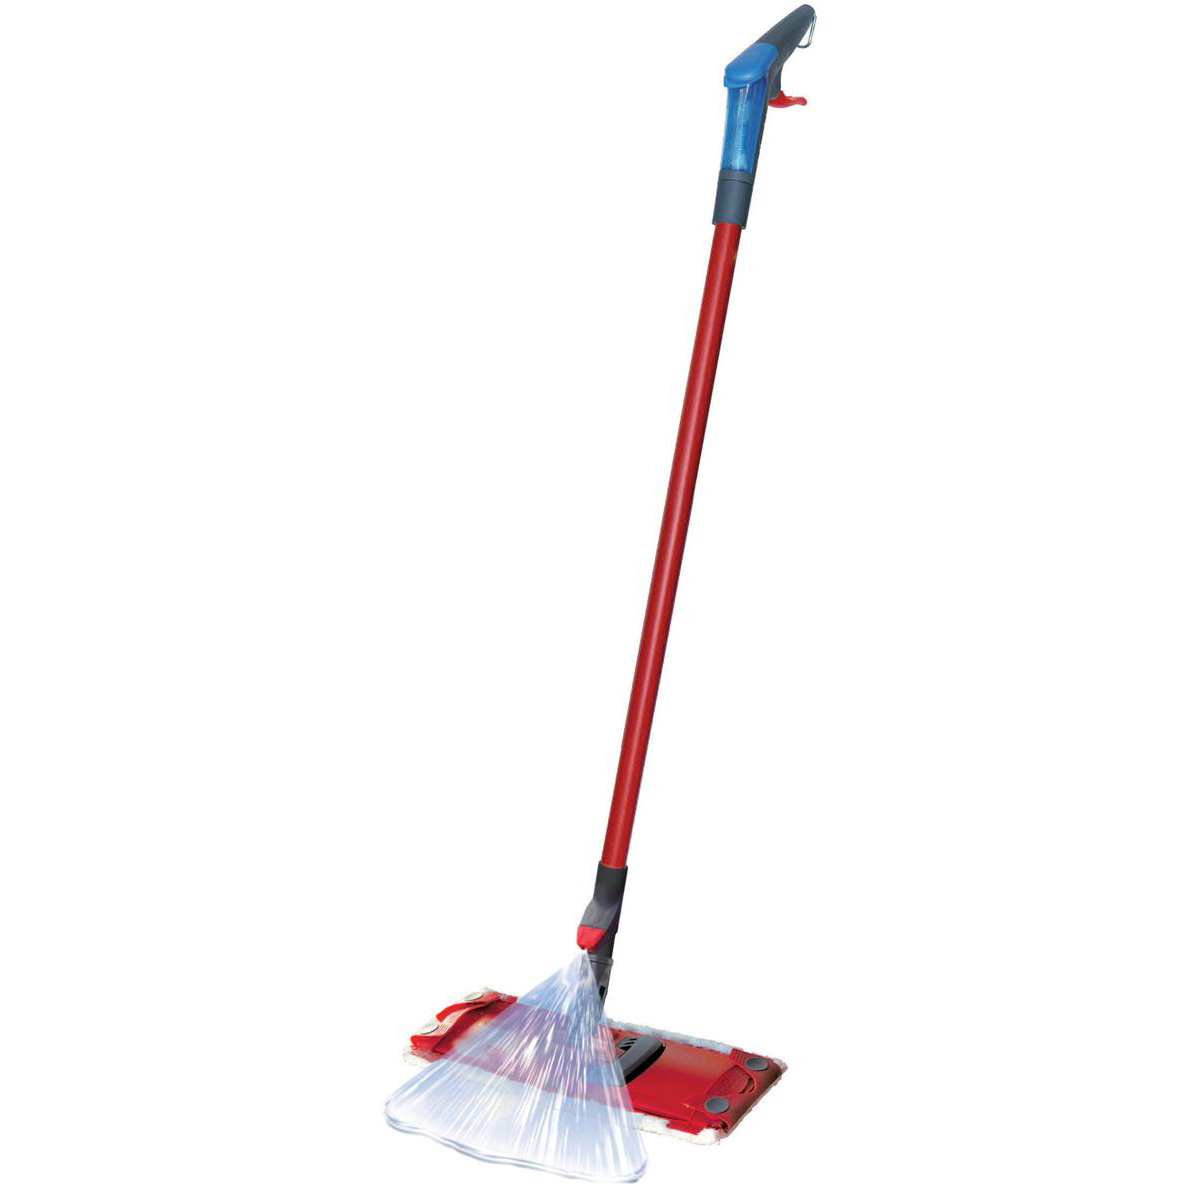 Mops & Buckets Vileda 1Vileda 1-2 Spray and Clean Mop System Red Ref -2 Spray and Clean Mop System Red Ref 0909200